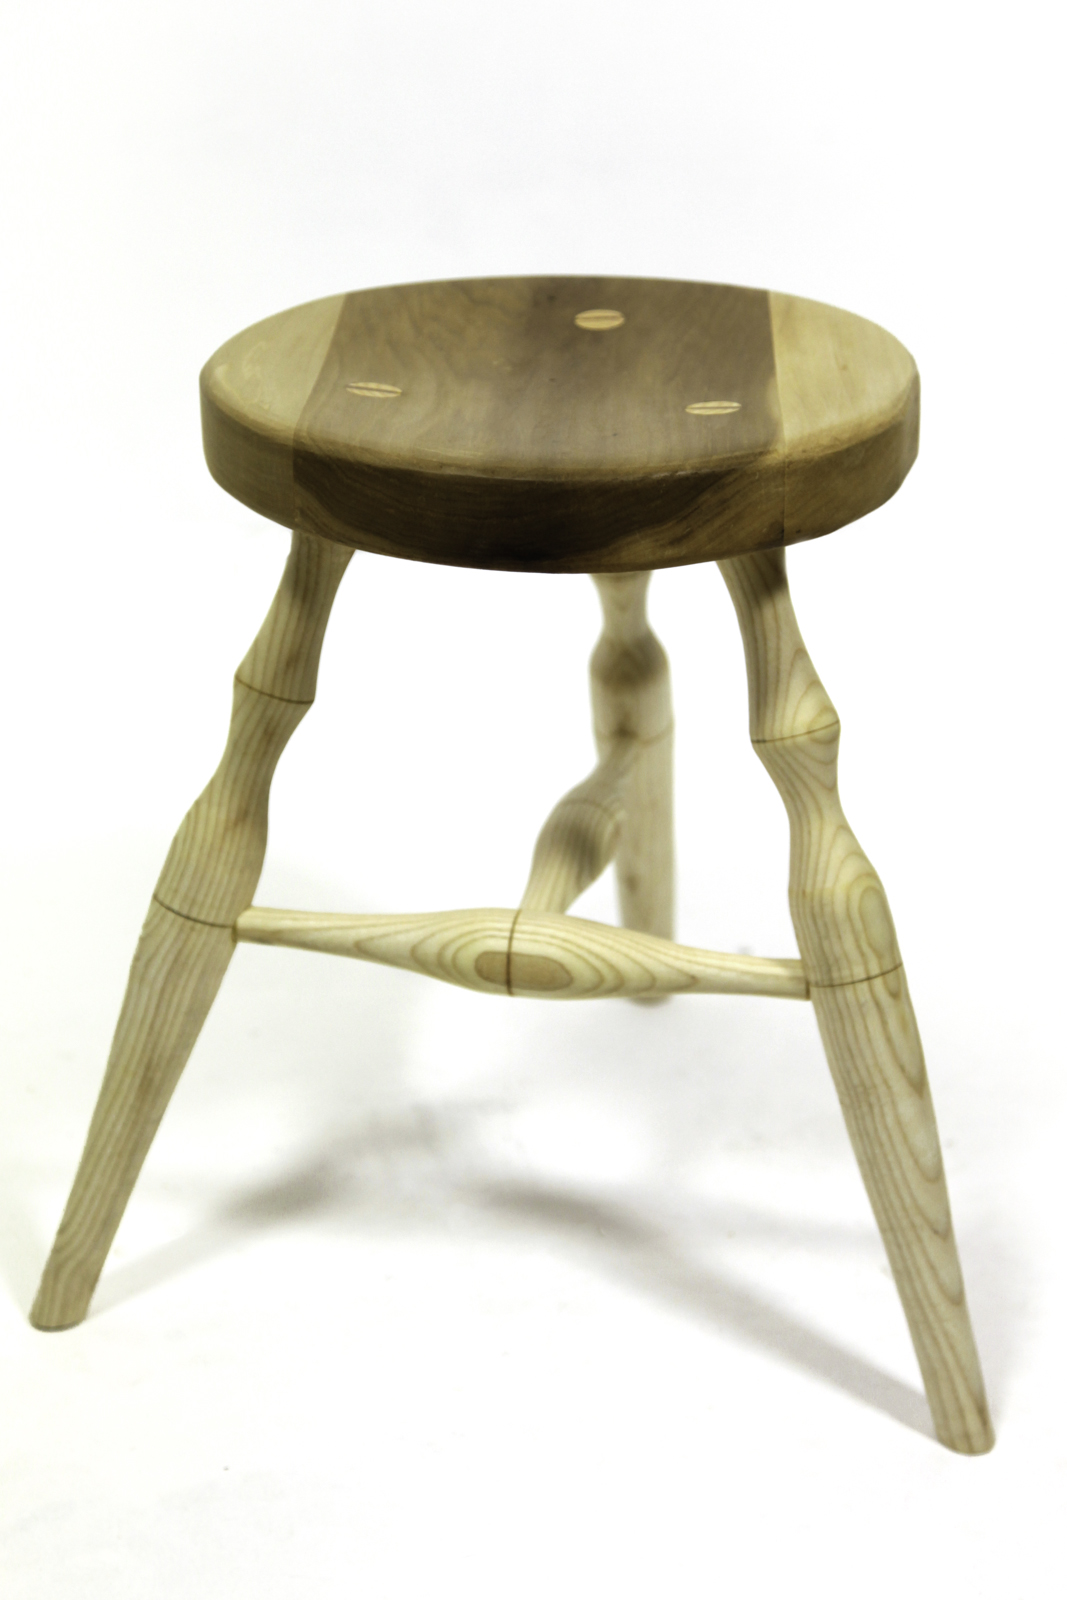 course stool